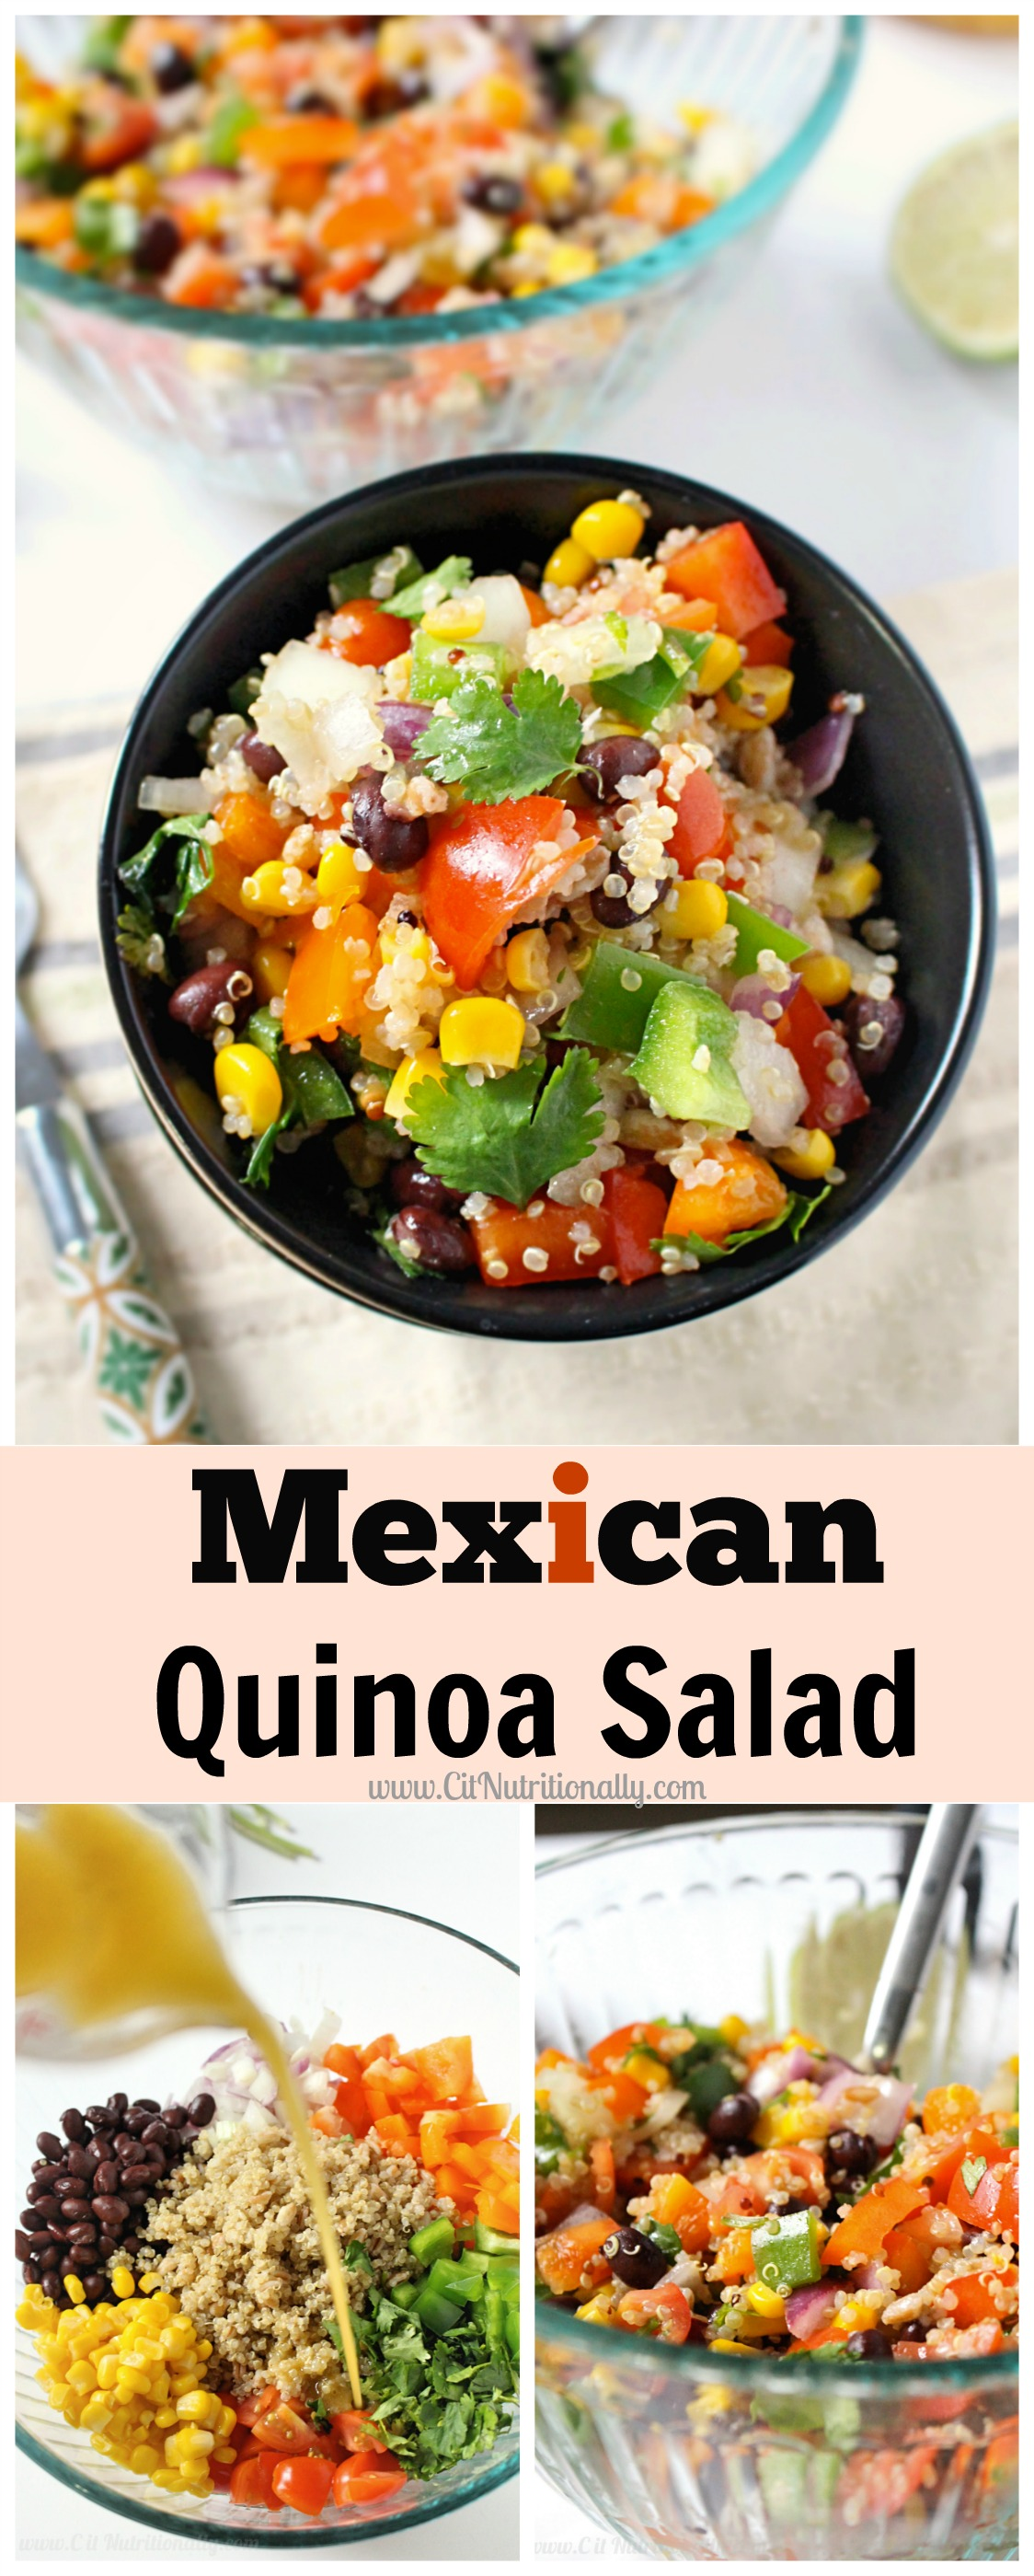 Mexican Quinoa Salad | C it Nutritionally